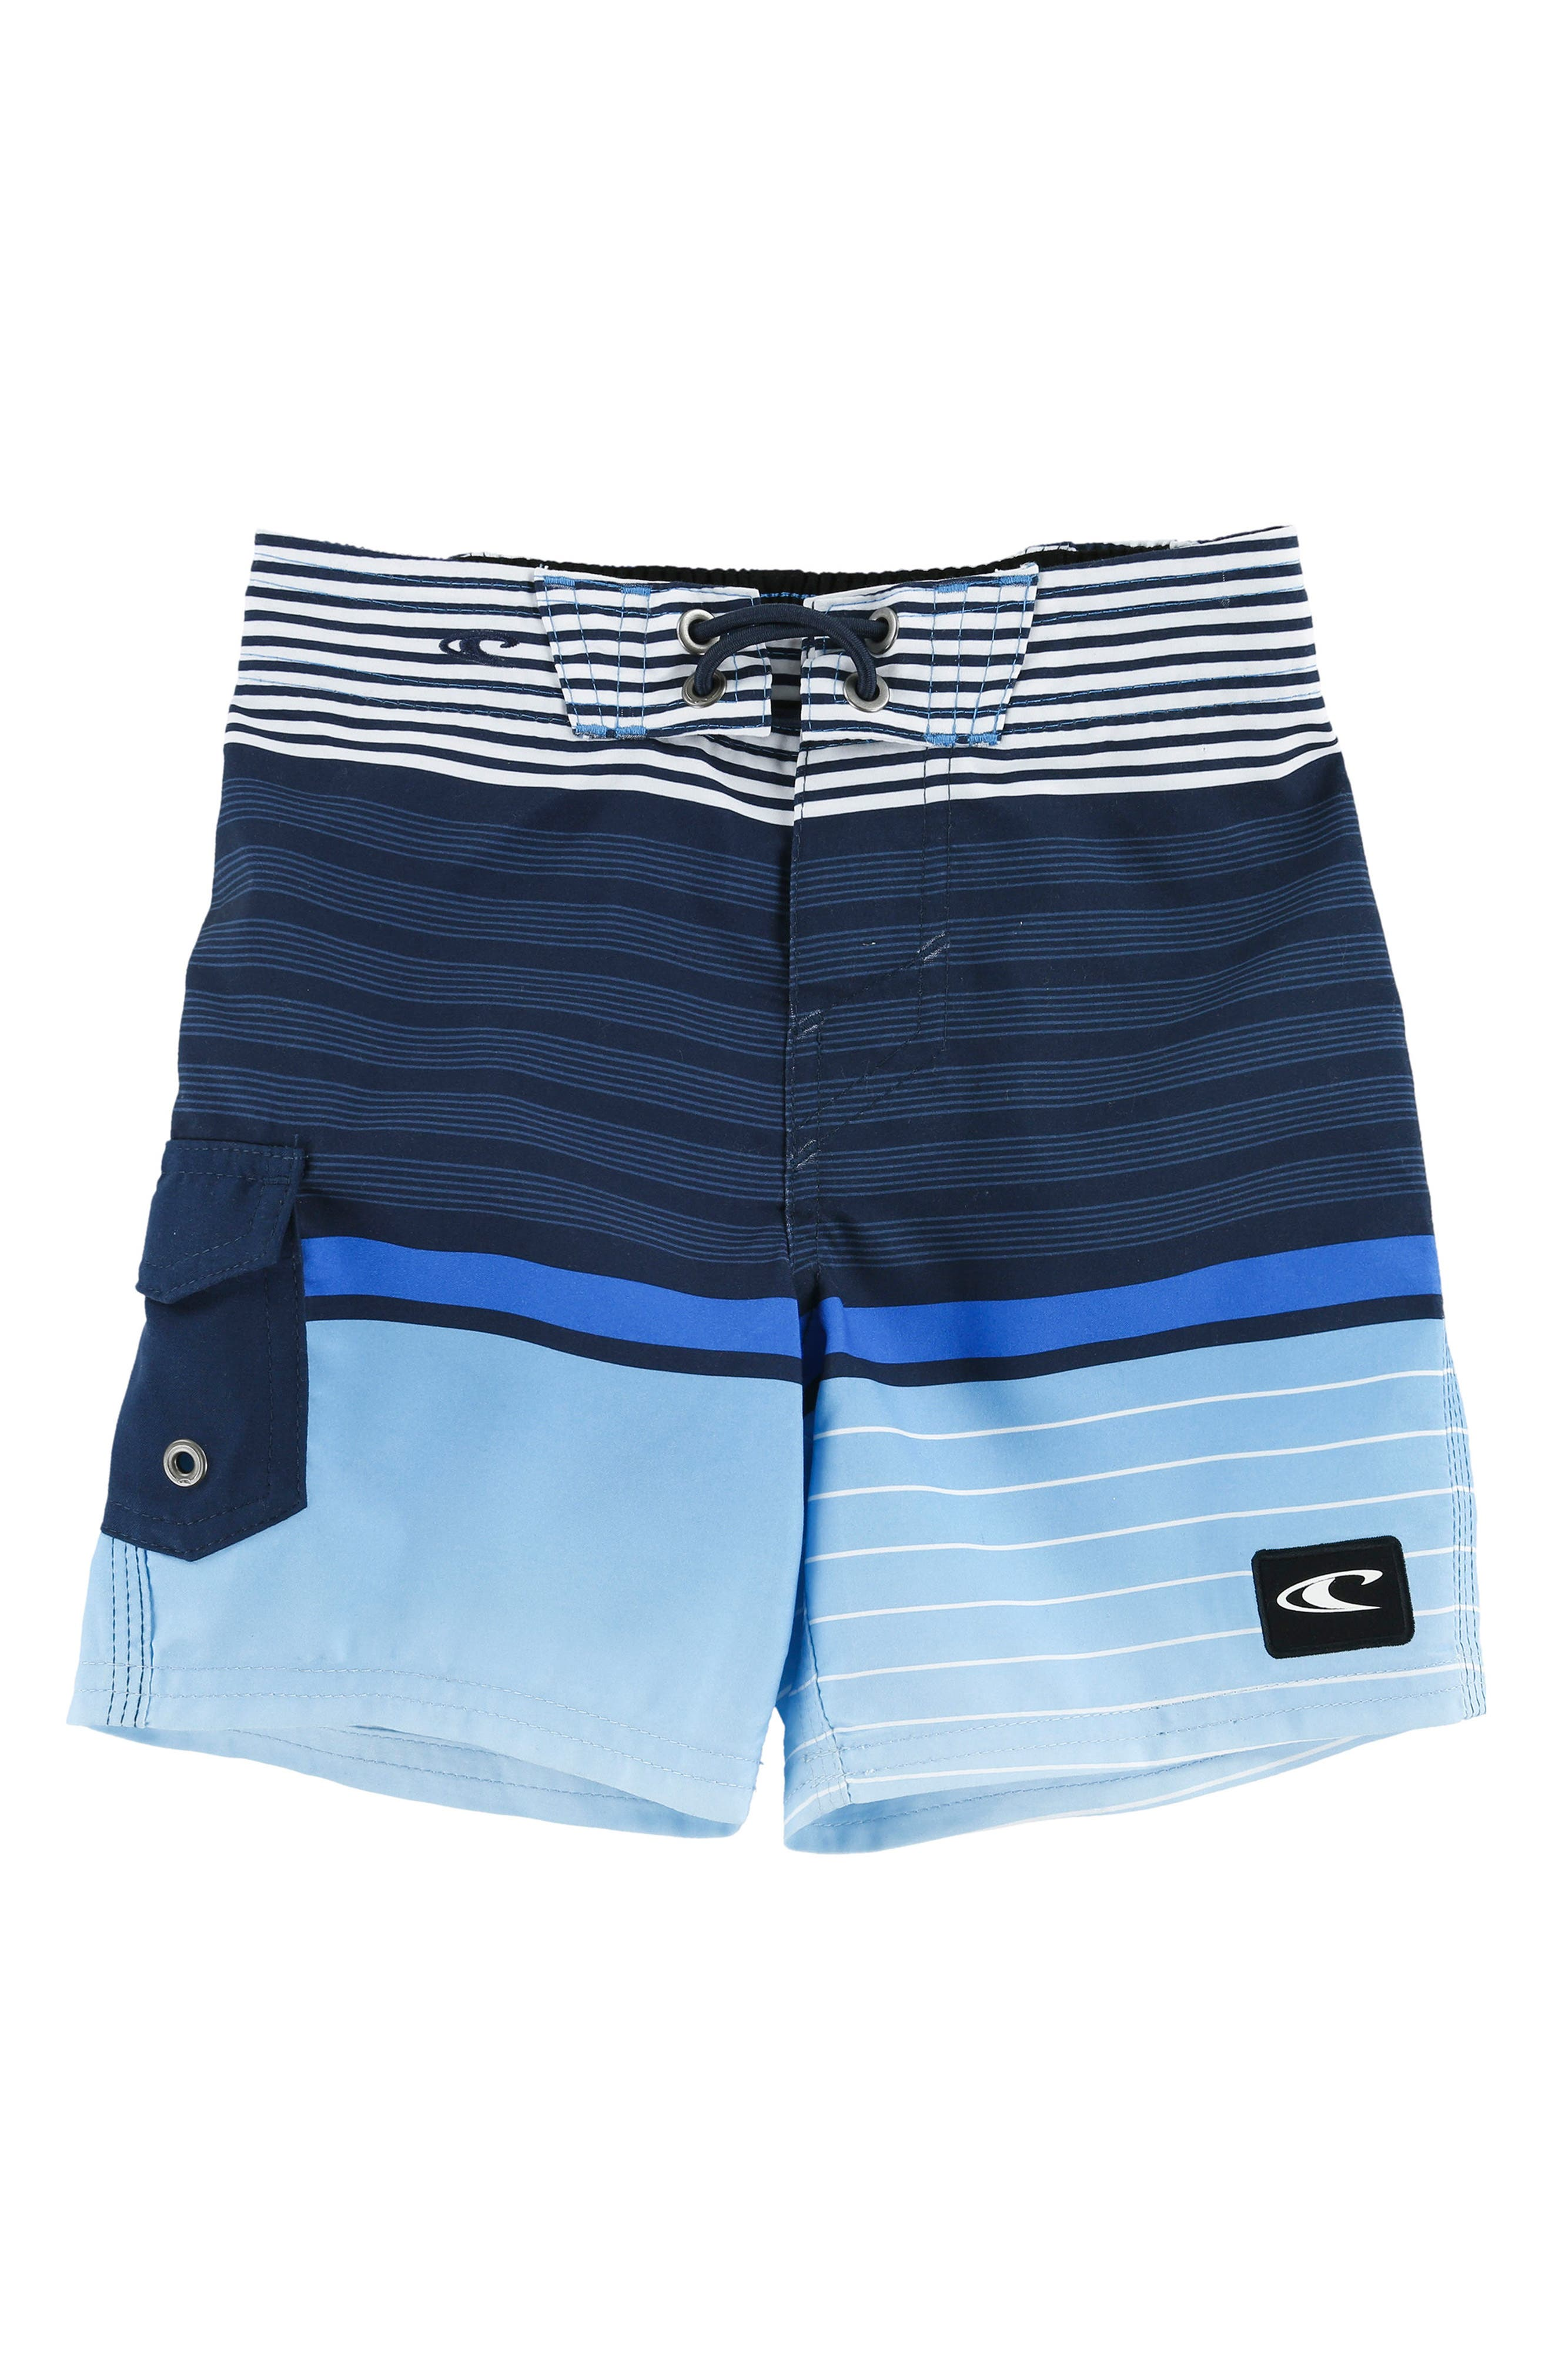 Main Image - O'Neill Lennox Stripe Board Shorts (Toddler Boys)